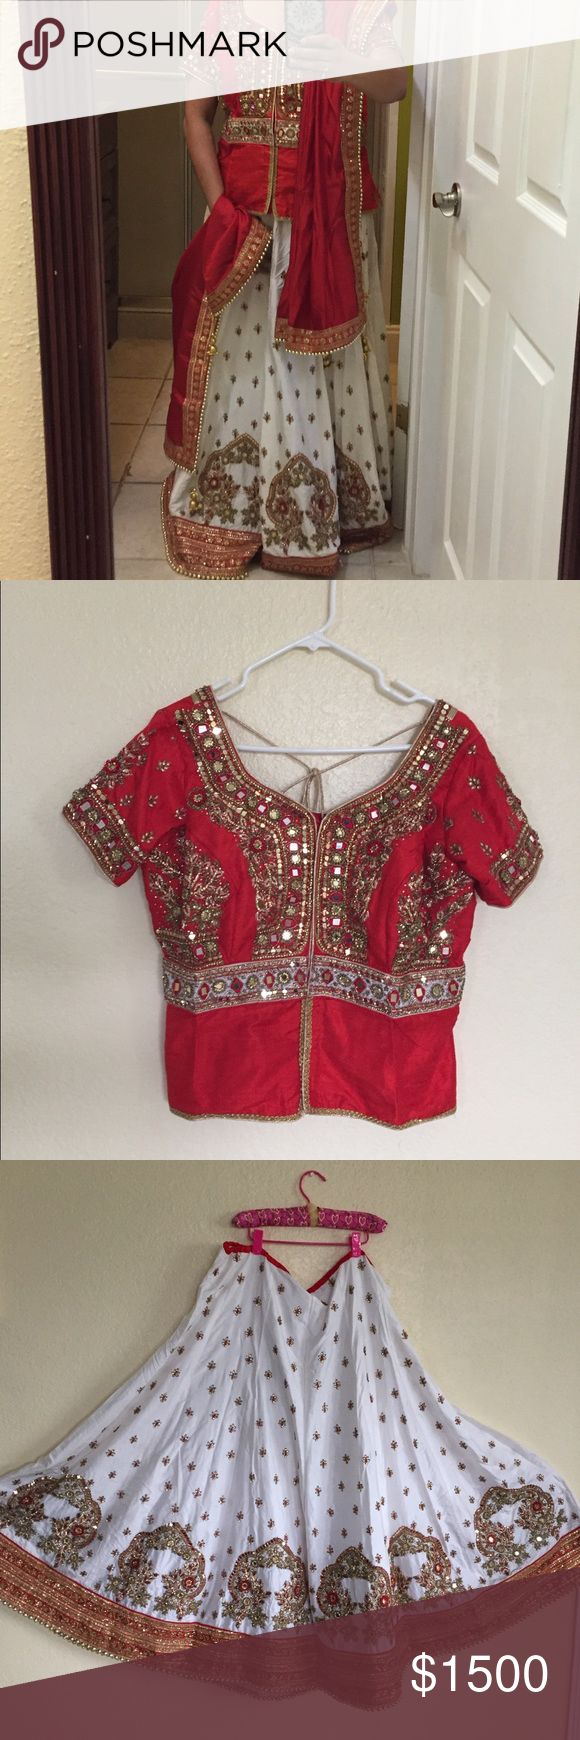 Indian Bridal Dress Brand new MUST GO pls try to share  Very Beautiful dress with white and red color come with blouse and dupatt. Very heavy and sparkly. Blouse size L but you can do M or S and fit to 5.1 to 5'3 Dresses Wedding